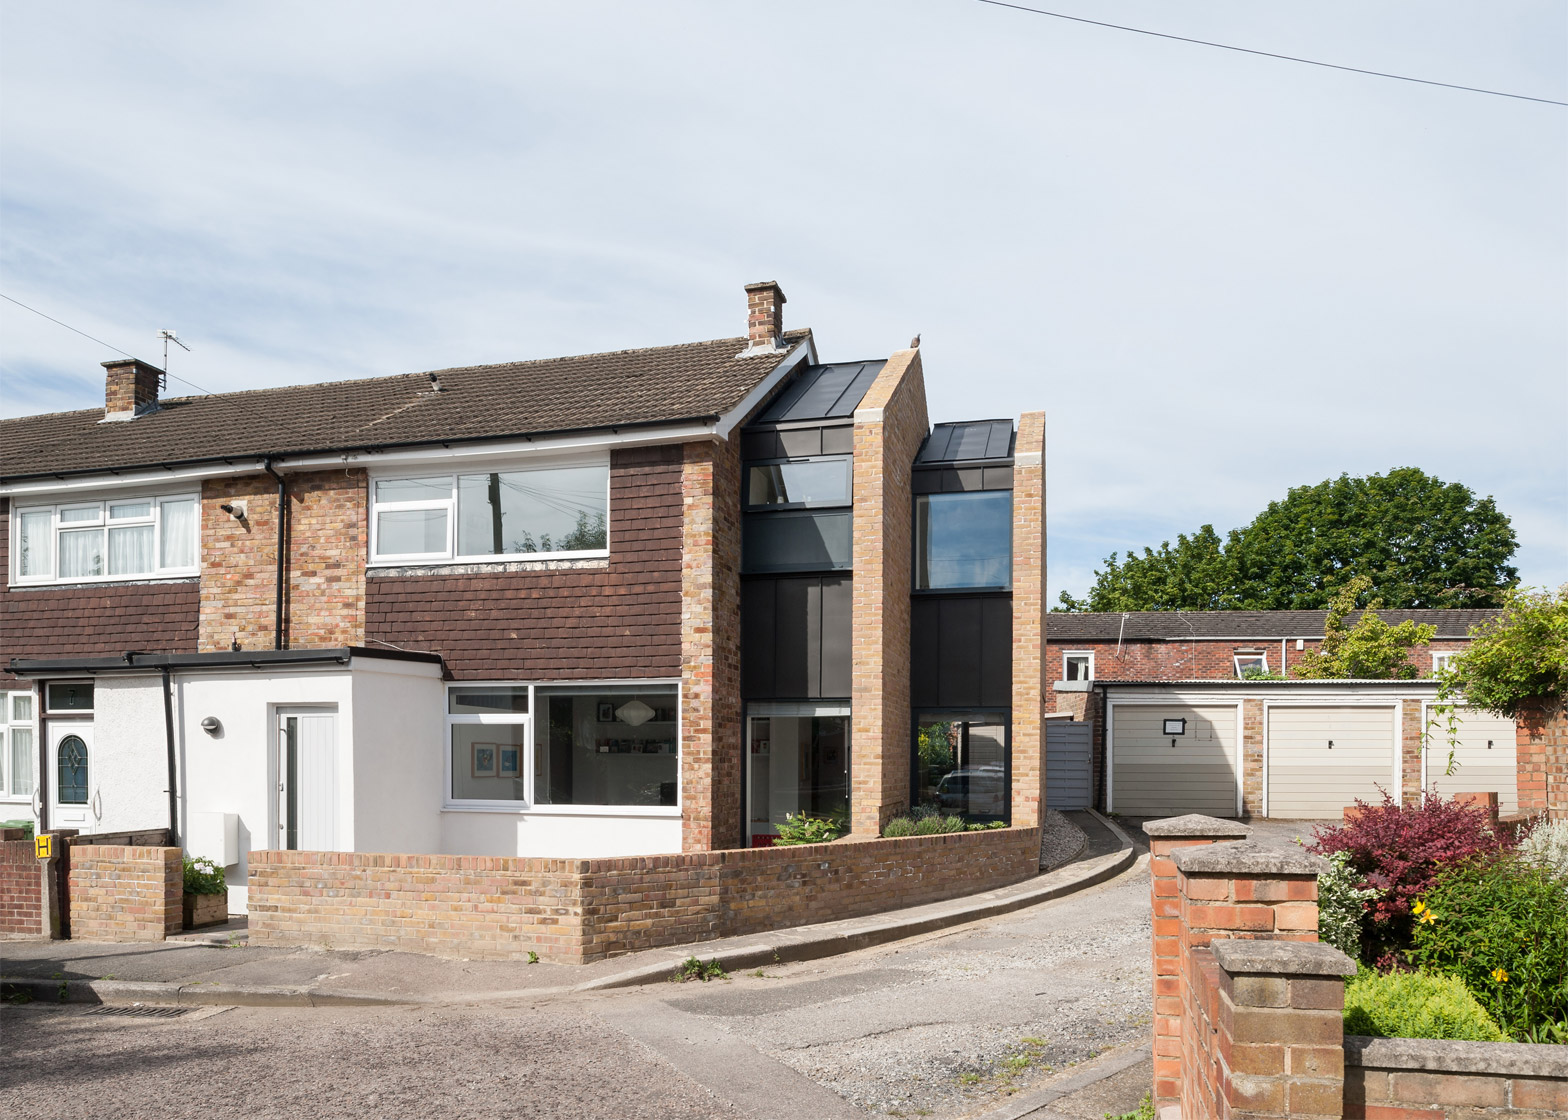 Selencky parsons adds stepped extension to 1960s terraced for What is terrace house